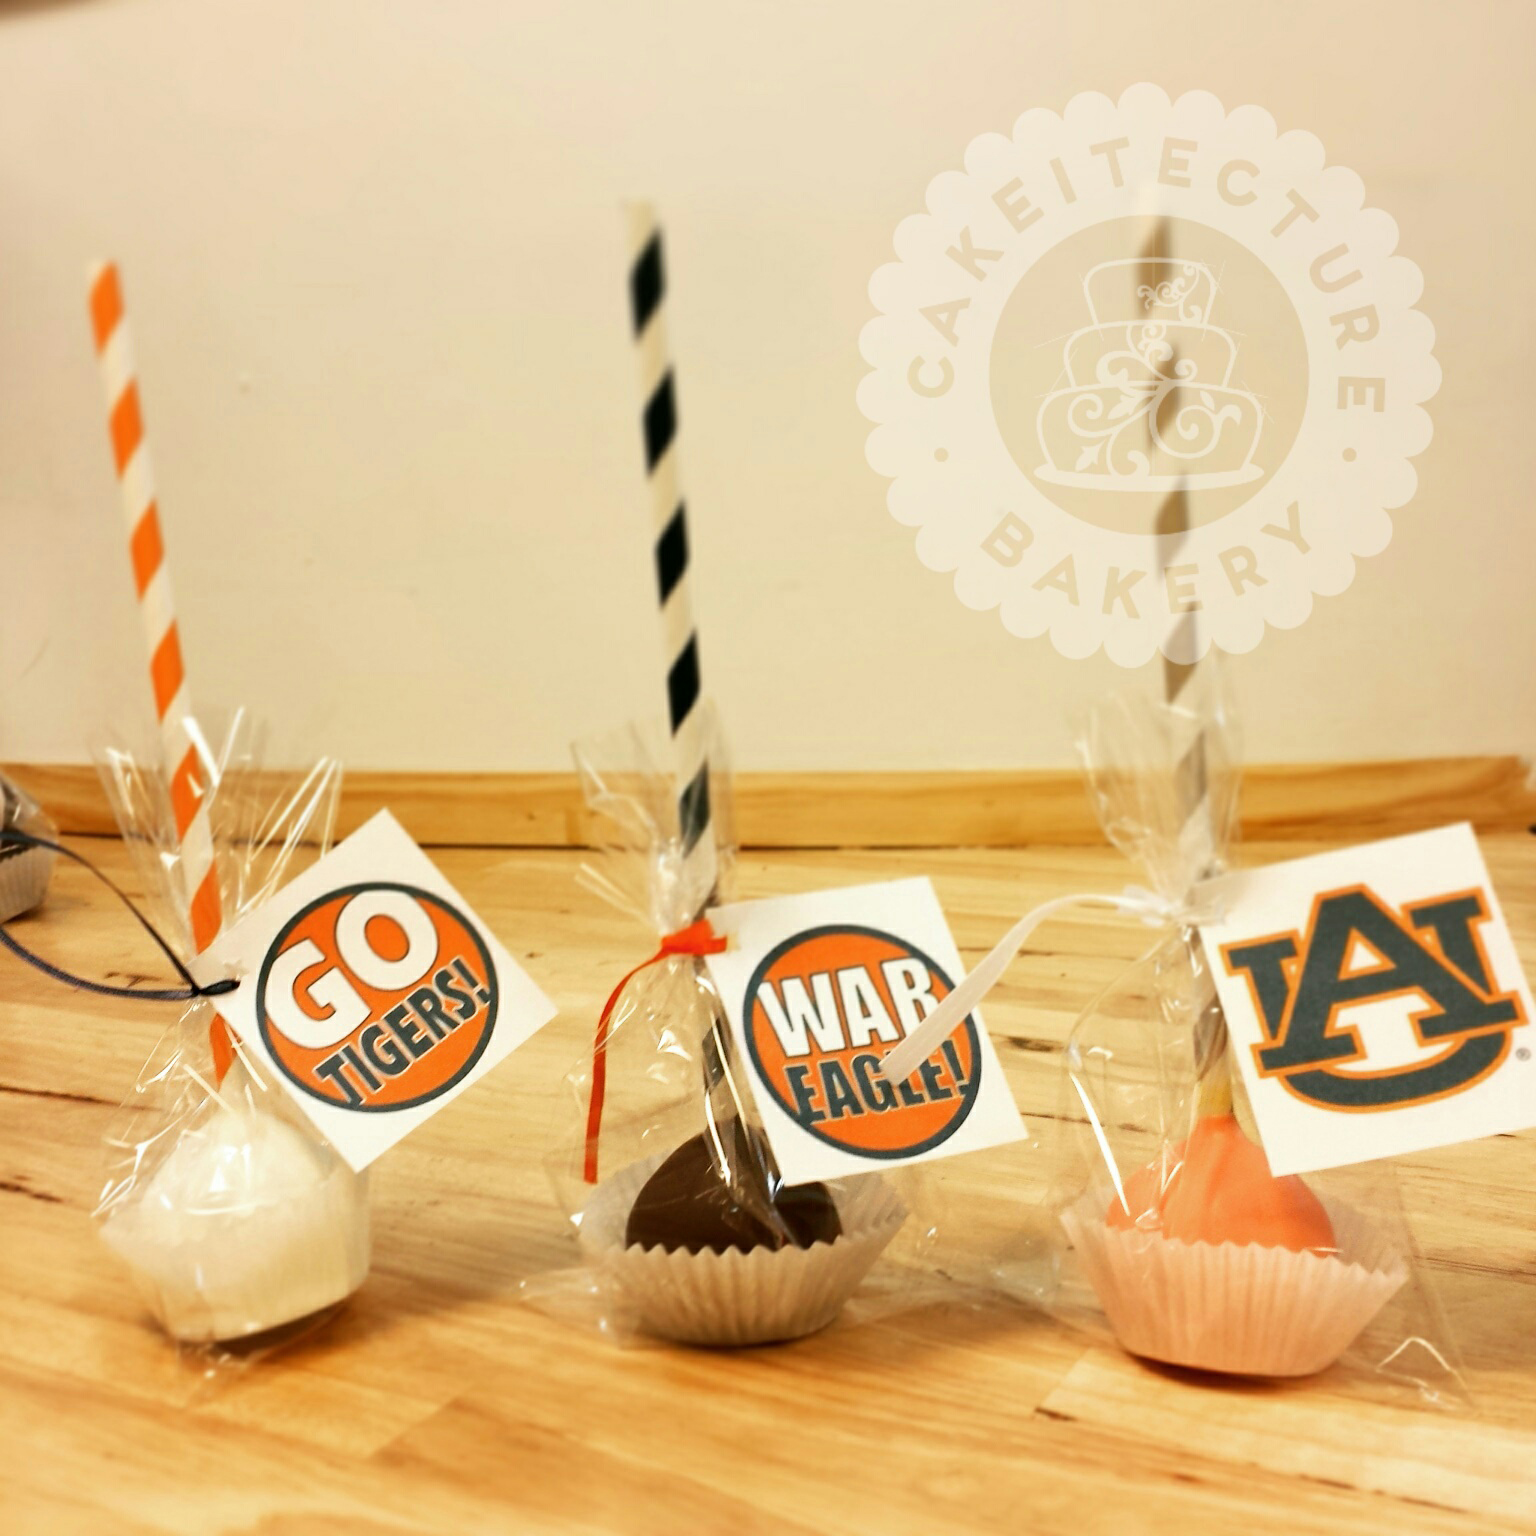 Cakeitecture Bakery war eagle pops.jpg